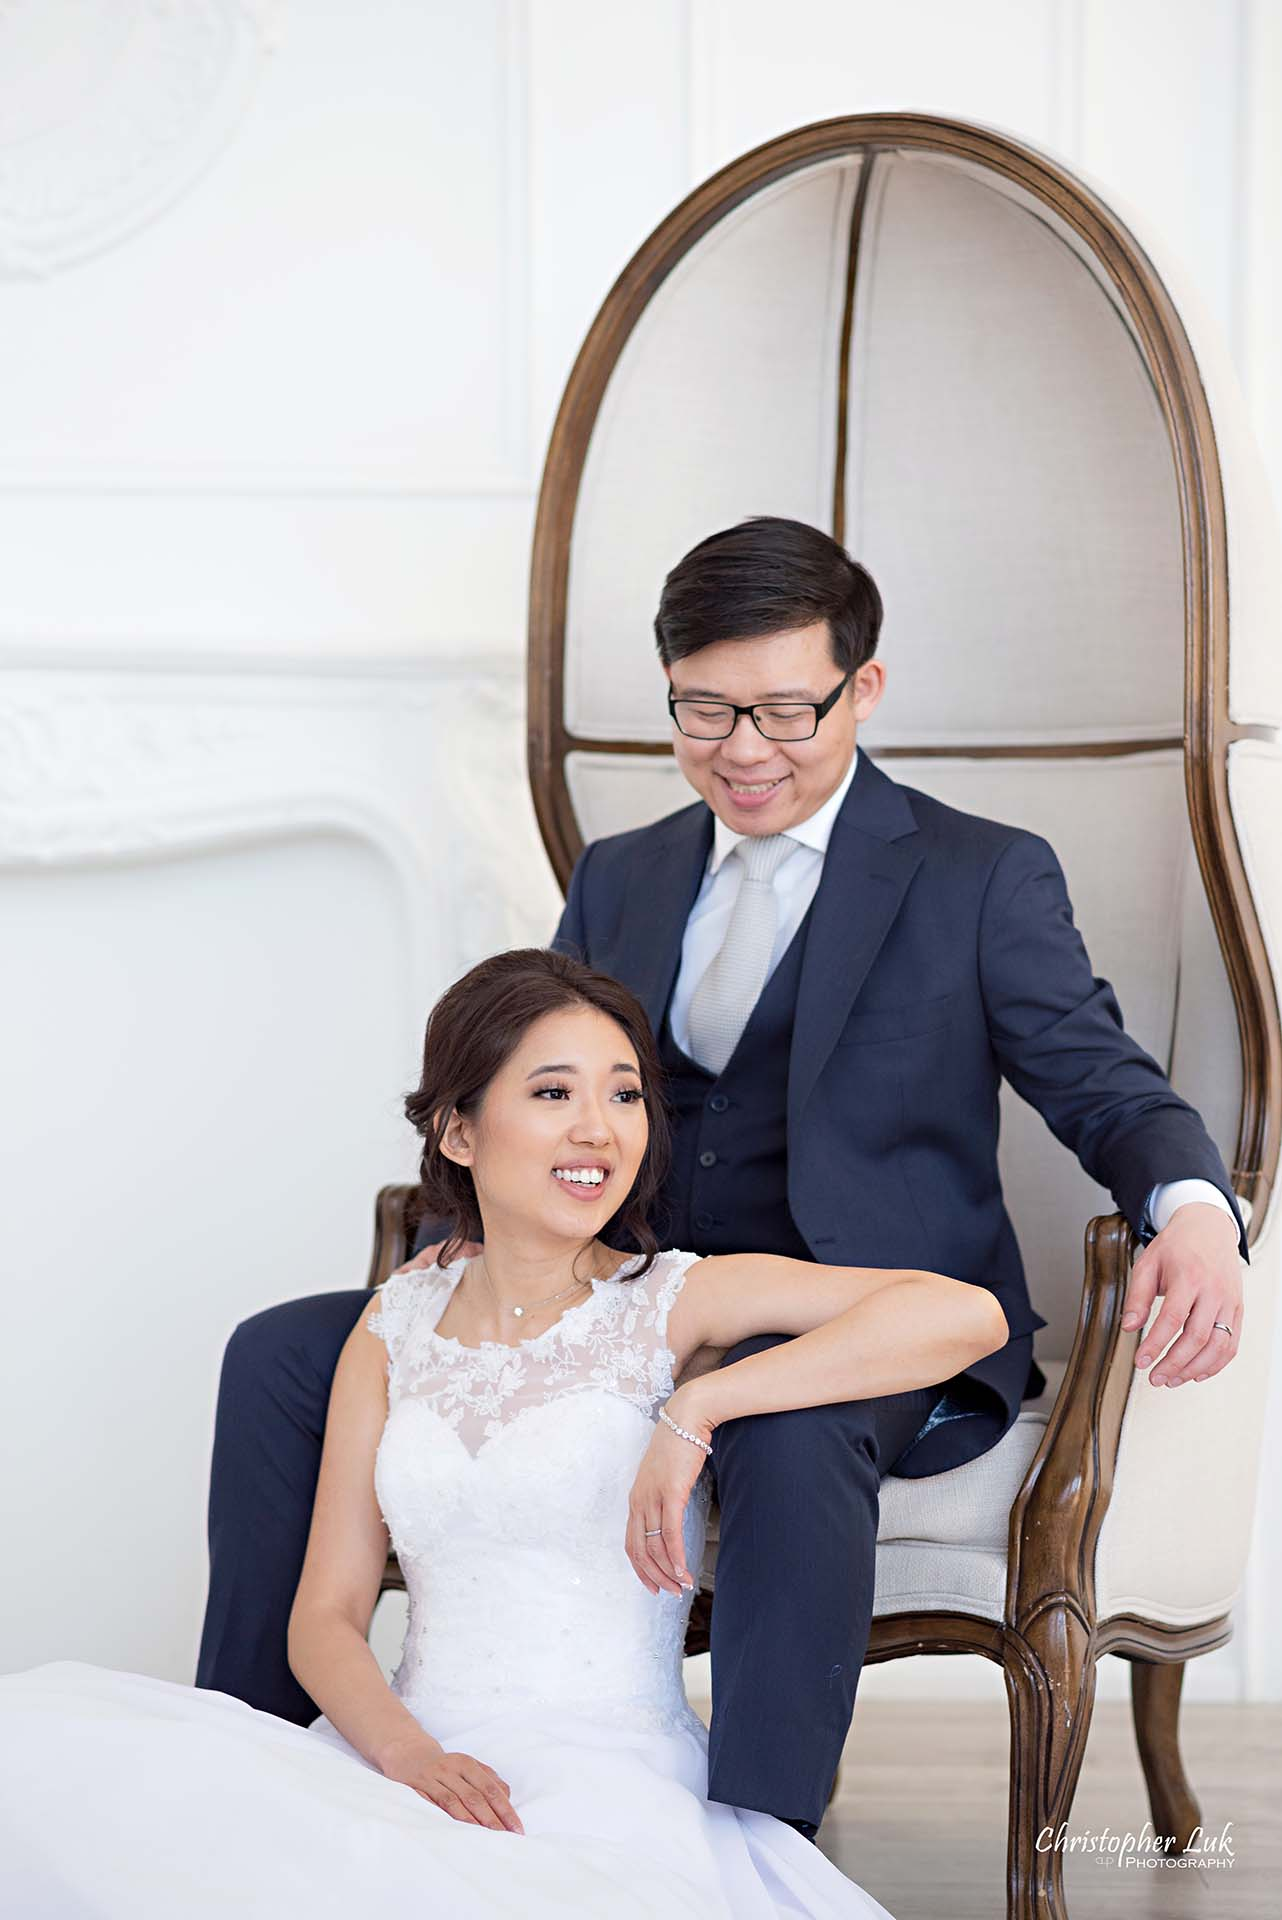 Christopher Luk Toronto Wedding Photographer - Mint Room Studios Bride Groom Natural Candid Photojournalistic Conservatory Ballroom Dome Chair Styled Portrait Close